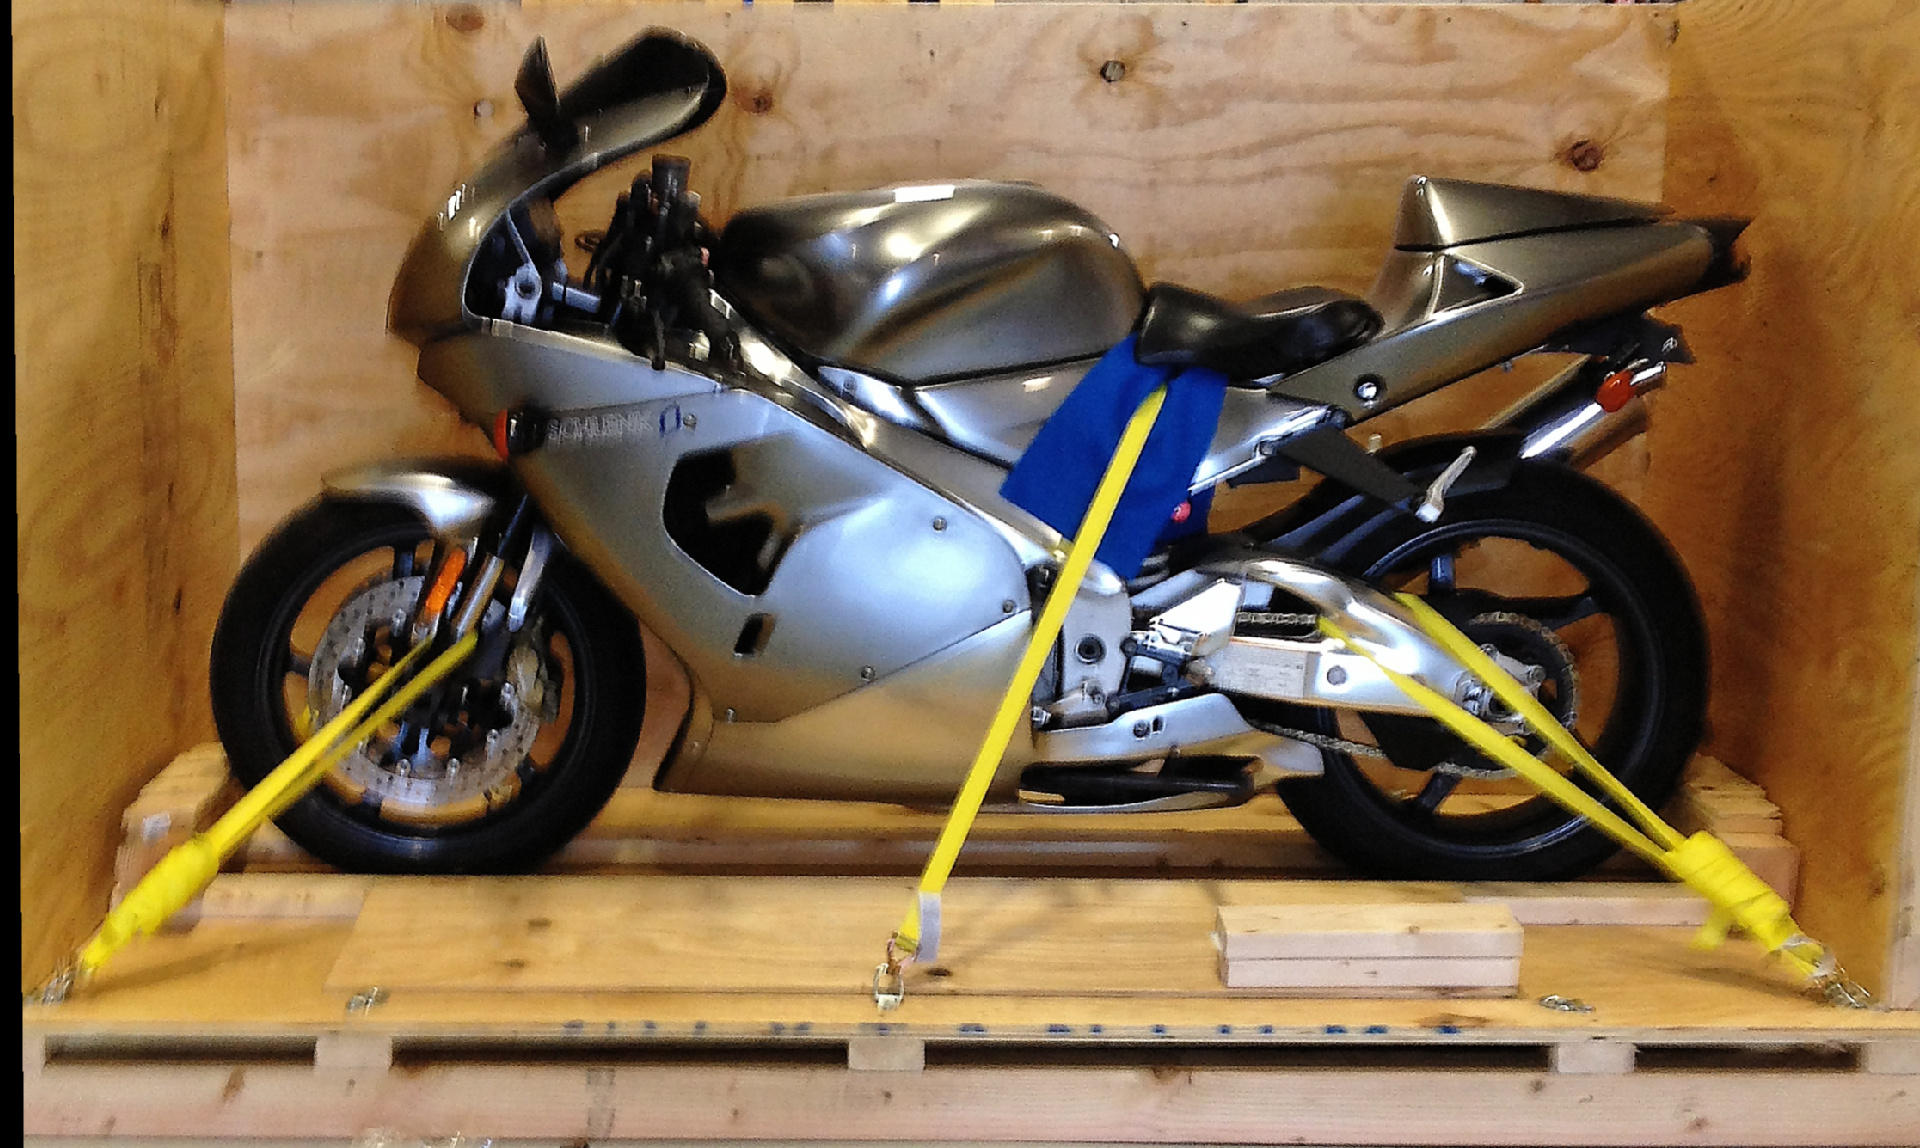 Motorcycle Shipping at Navis Pack & Ship in Boston